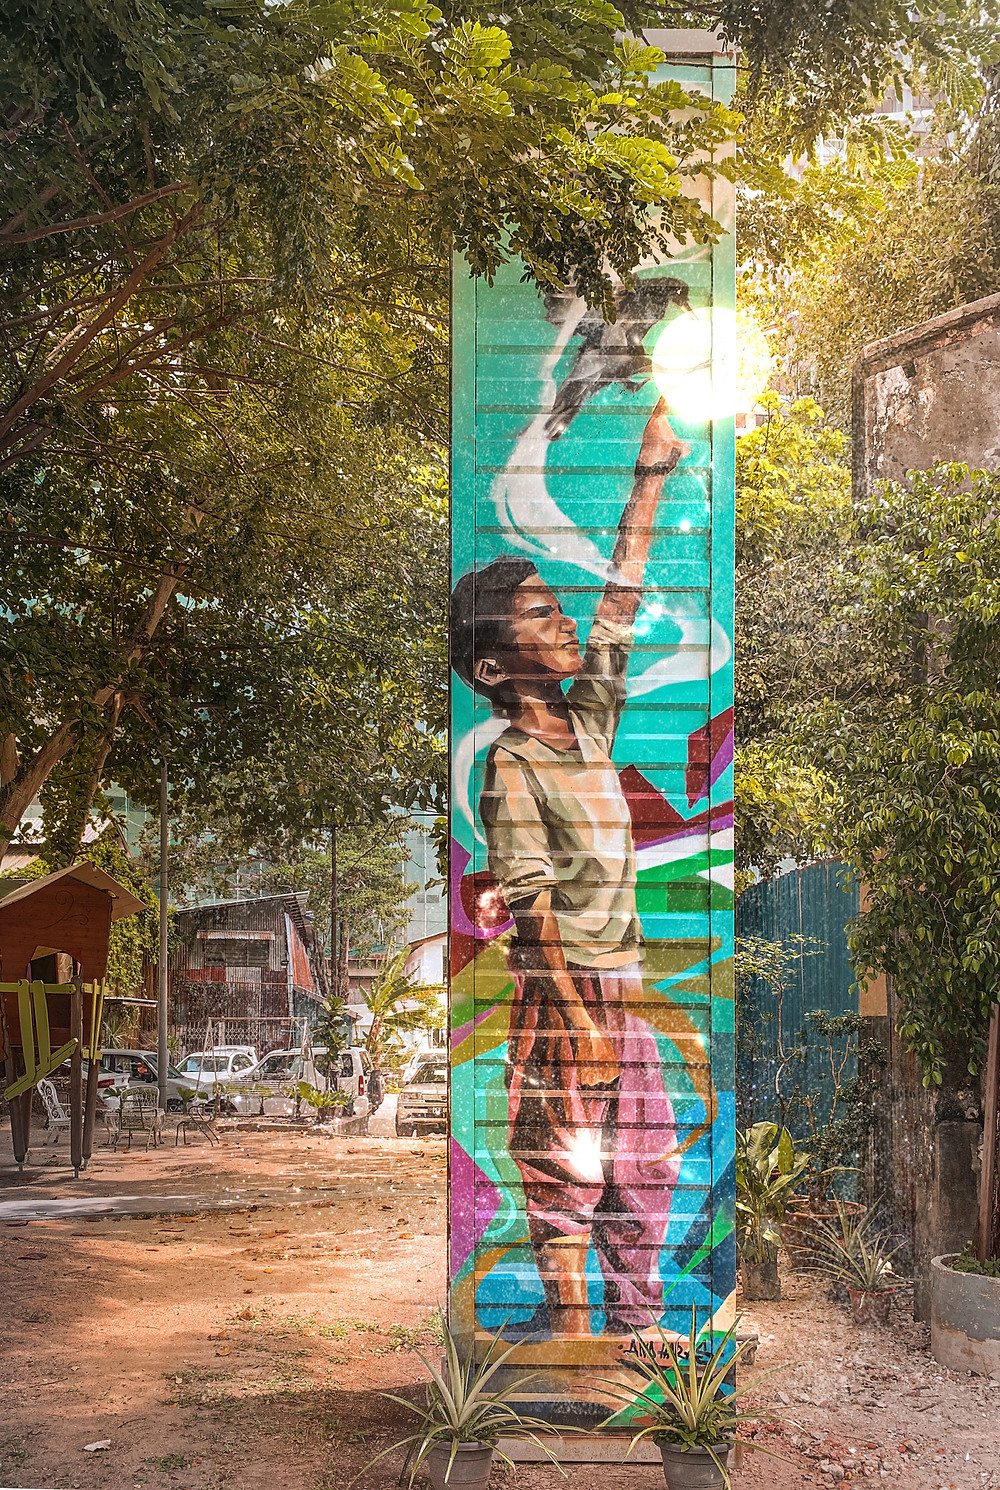 Colourful painted boy mural on perforated pillar of Hin Bus Depot, RollingBear Travels blog.